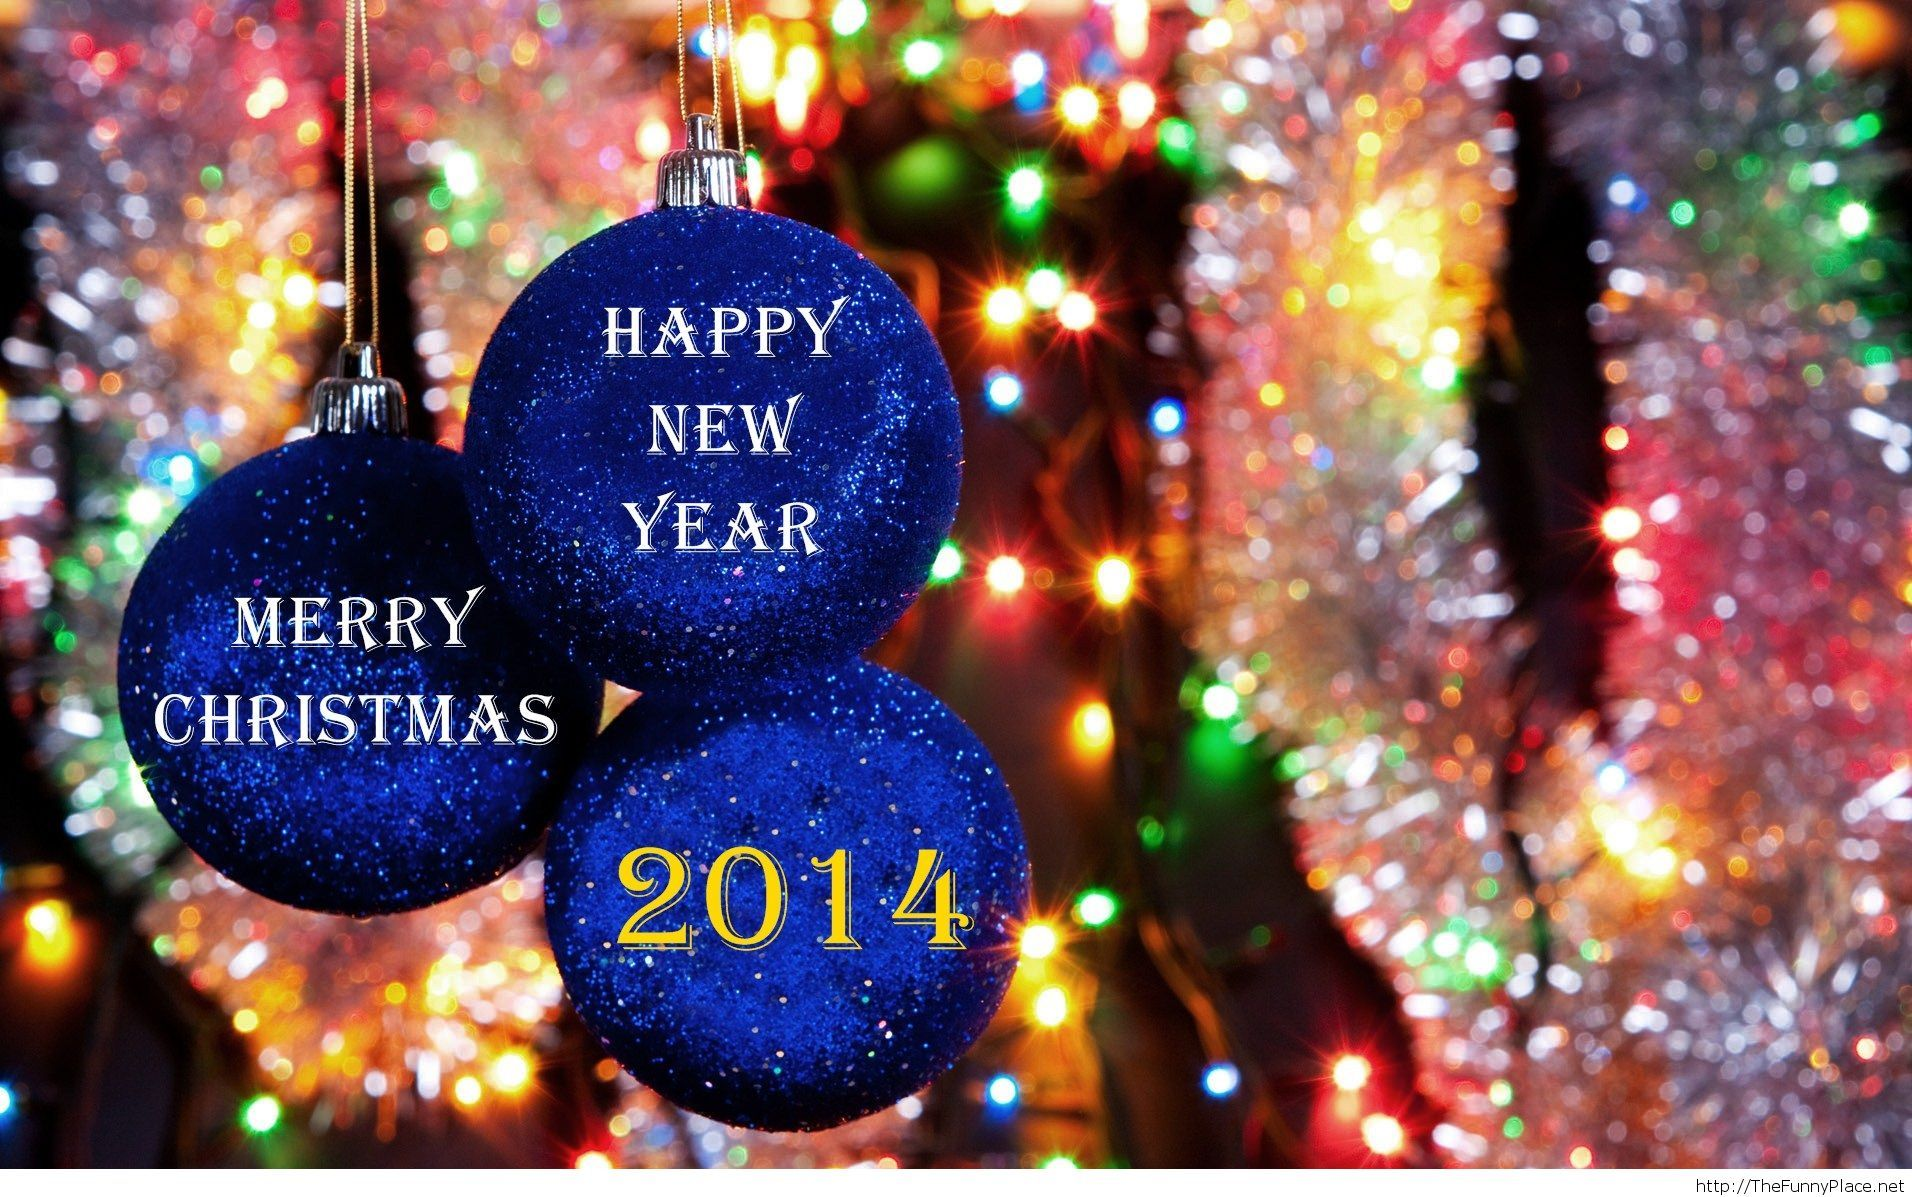 merry christmas and happy new year 2014 hd wallpaper